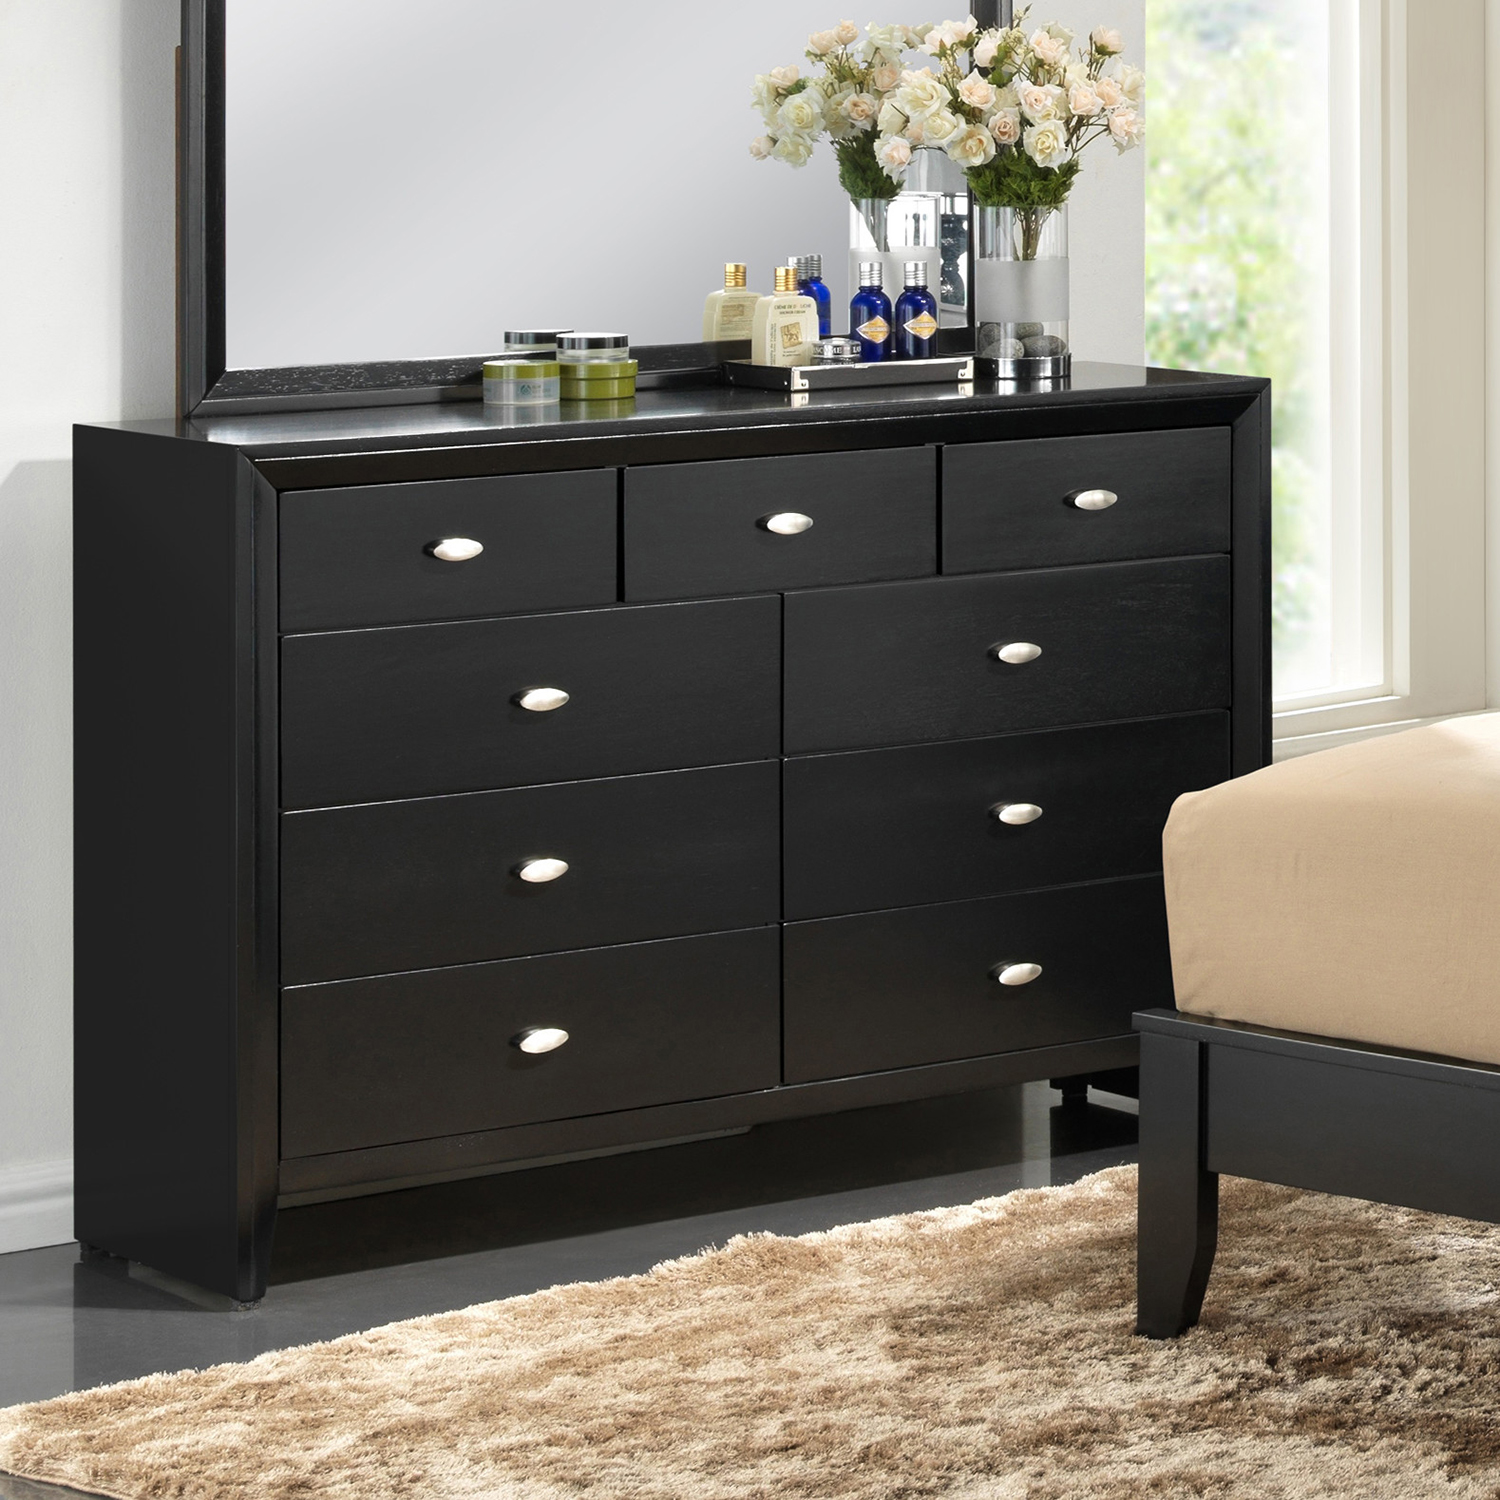 Carolina Dresser - Black - GLO-CAROLINA-FD0035B-BL-D-M